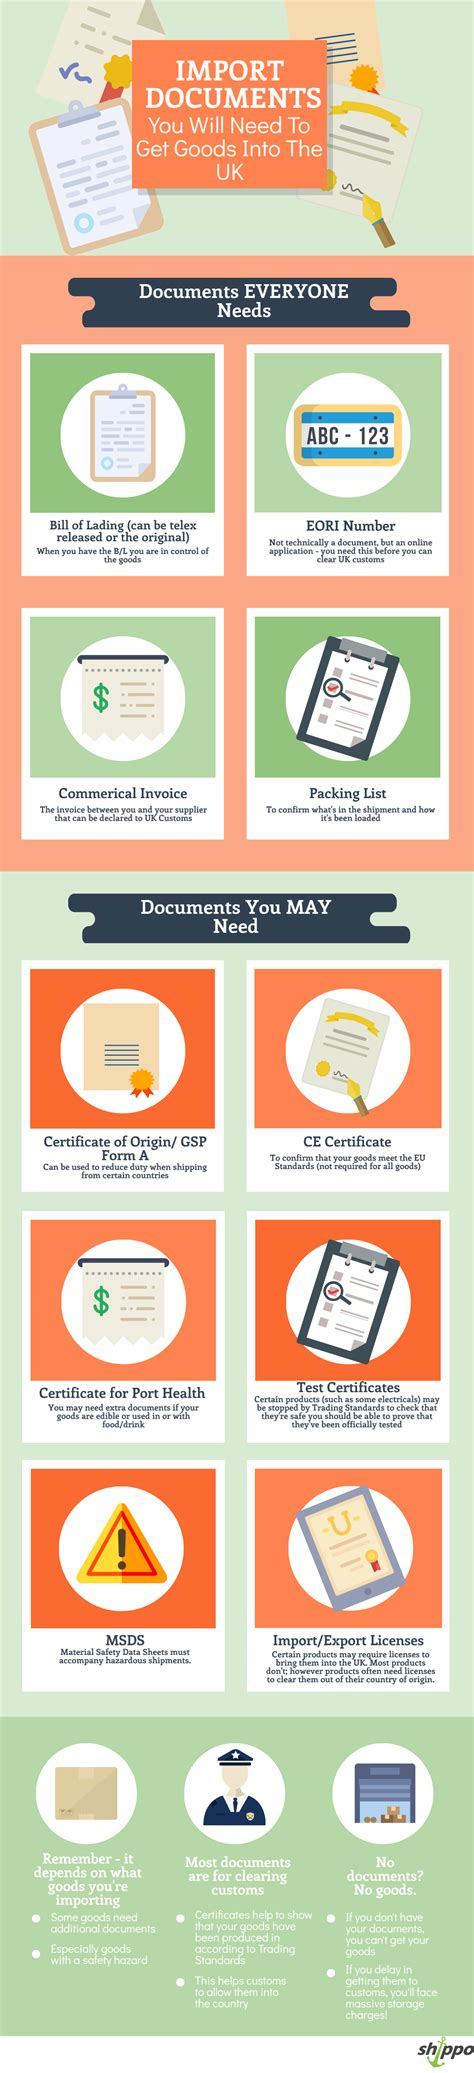 documents needed for buying a house what documents do i need to buy a house 28 images import documents uk do you need